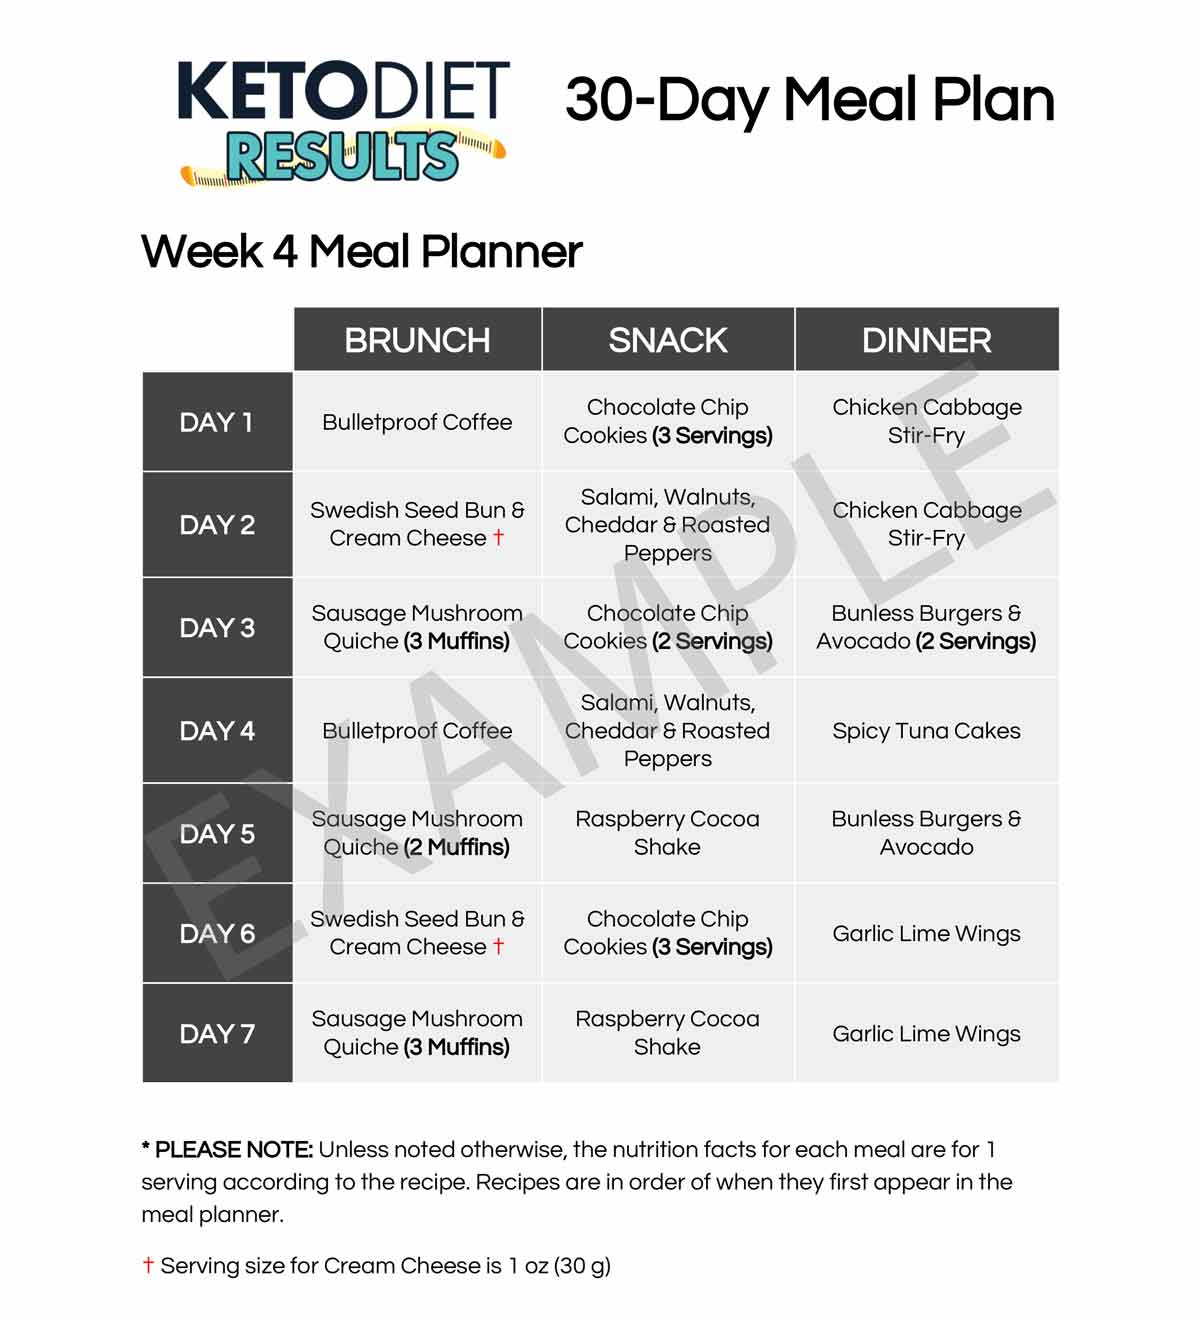 Lose Weight with This 30-Day Keto Meal Plan! - Keto Diet